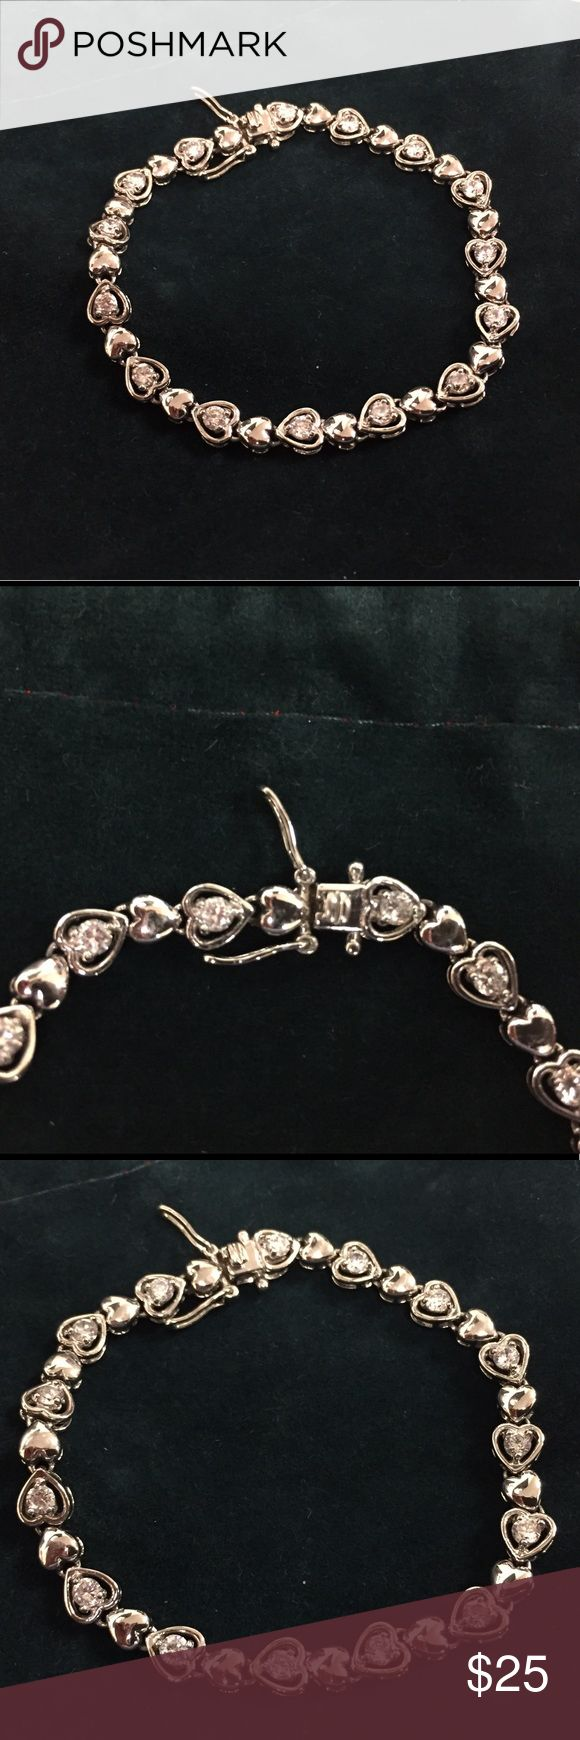 "Heart Shaped Tennis Bracelet 💙Gorgeous alternating silver and crystal (CZ) hearts. Sterling silver. Double safety latch closure. Approximately 7 1/2"" in length. In excellent condition. Jewelry Bracelets"